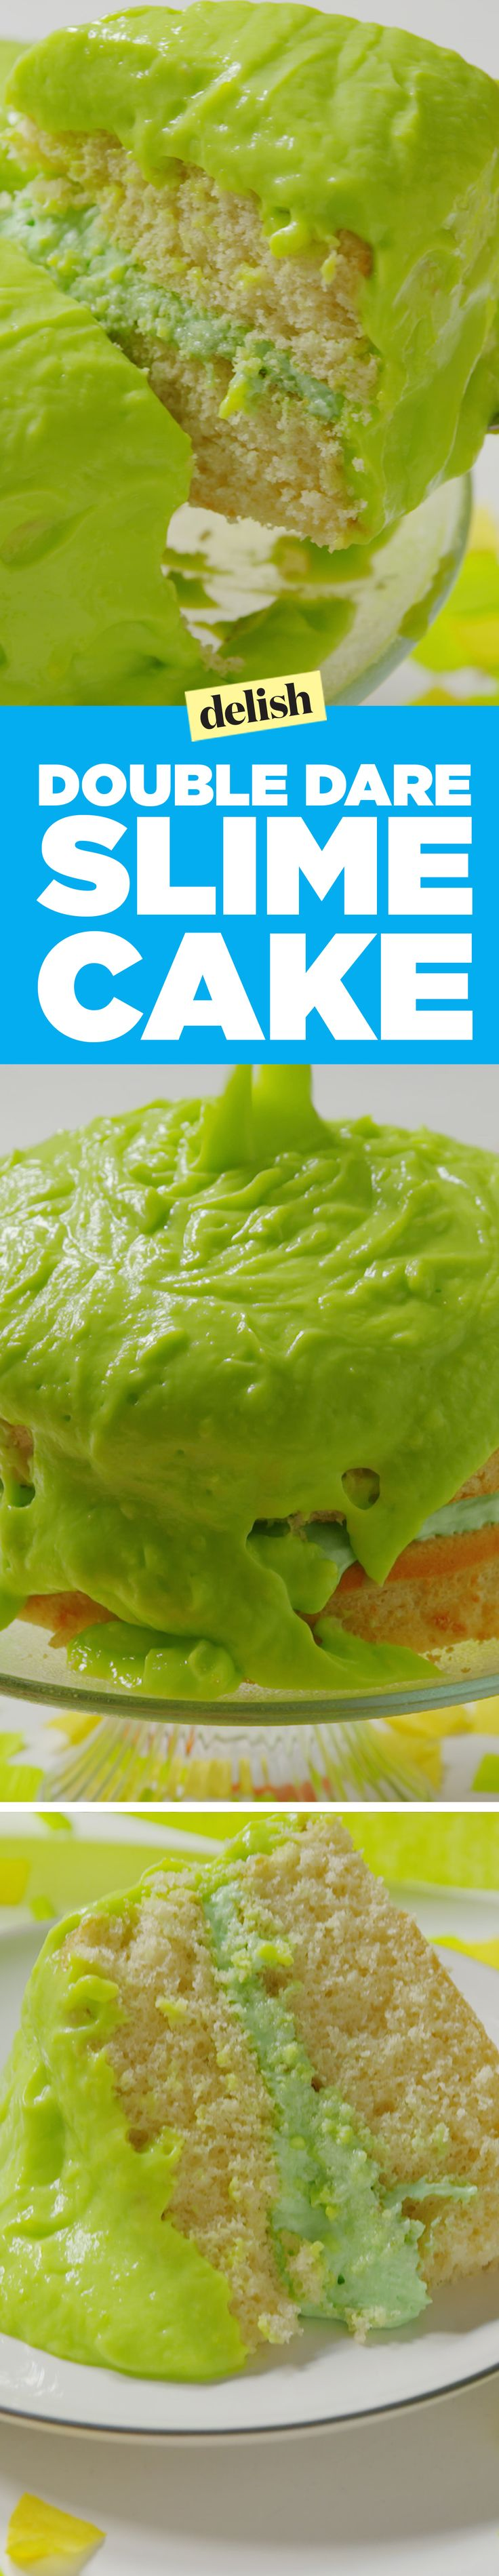 This double dare slime cake is the only way to celebrate the return of your favorite '90s show. Get the recipe on Delish.com.                                                                                                                                                                                 More